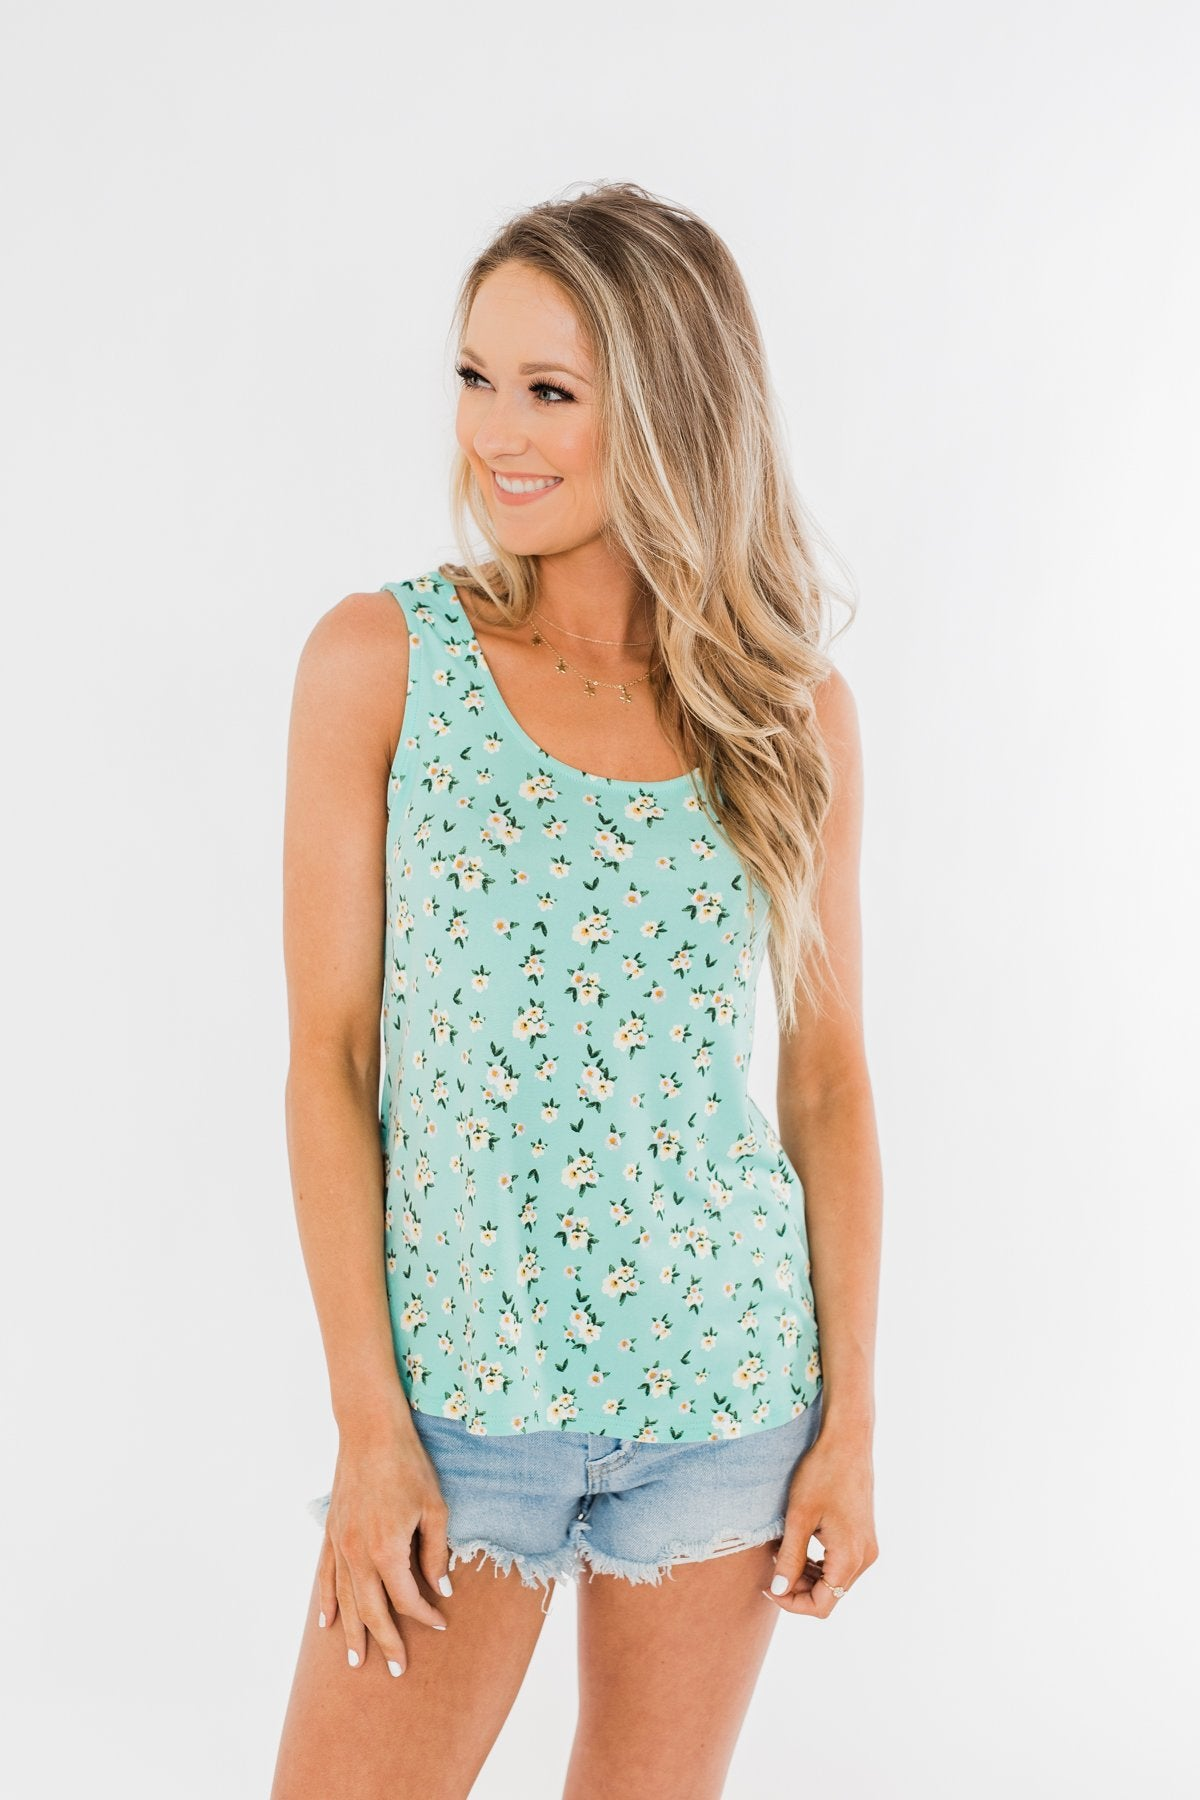 Easily Attracted Floral Tank Top- Mint